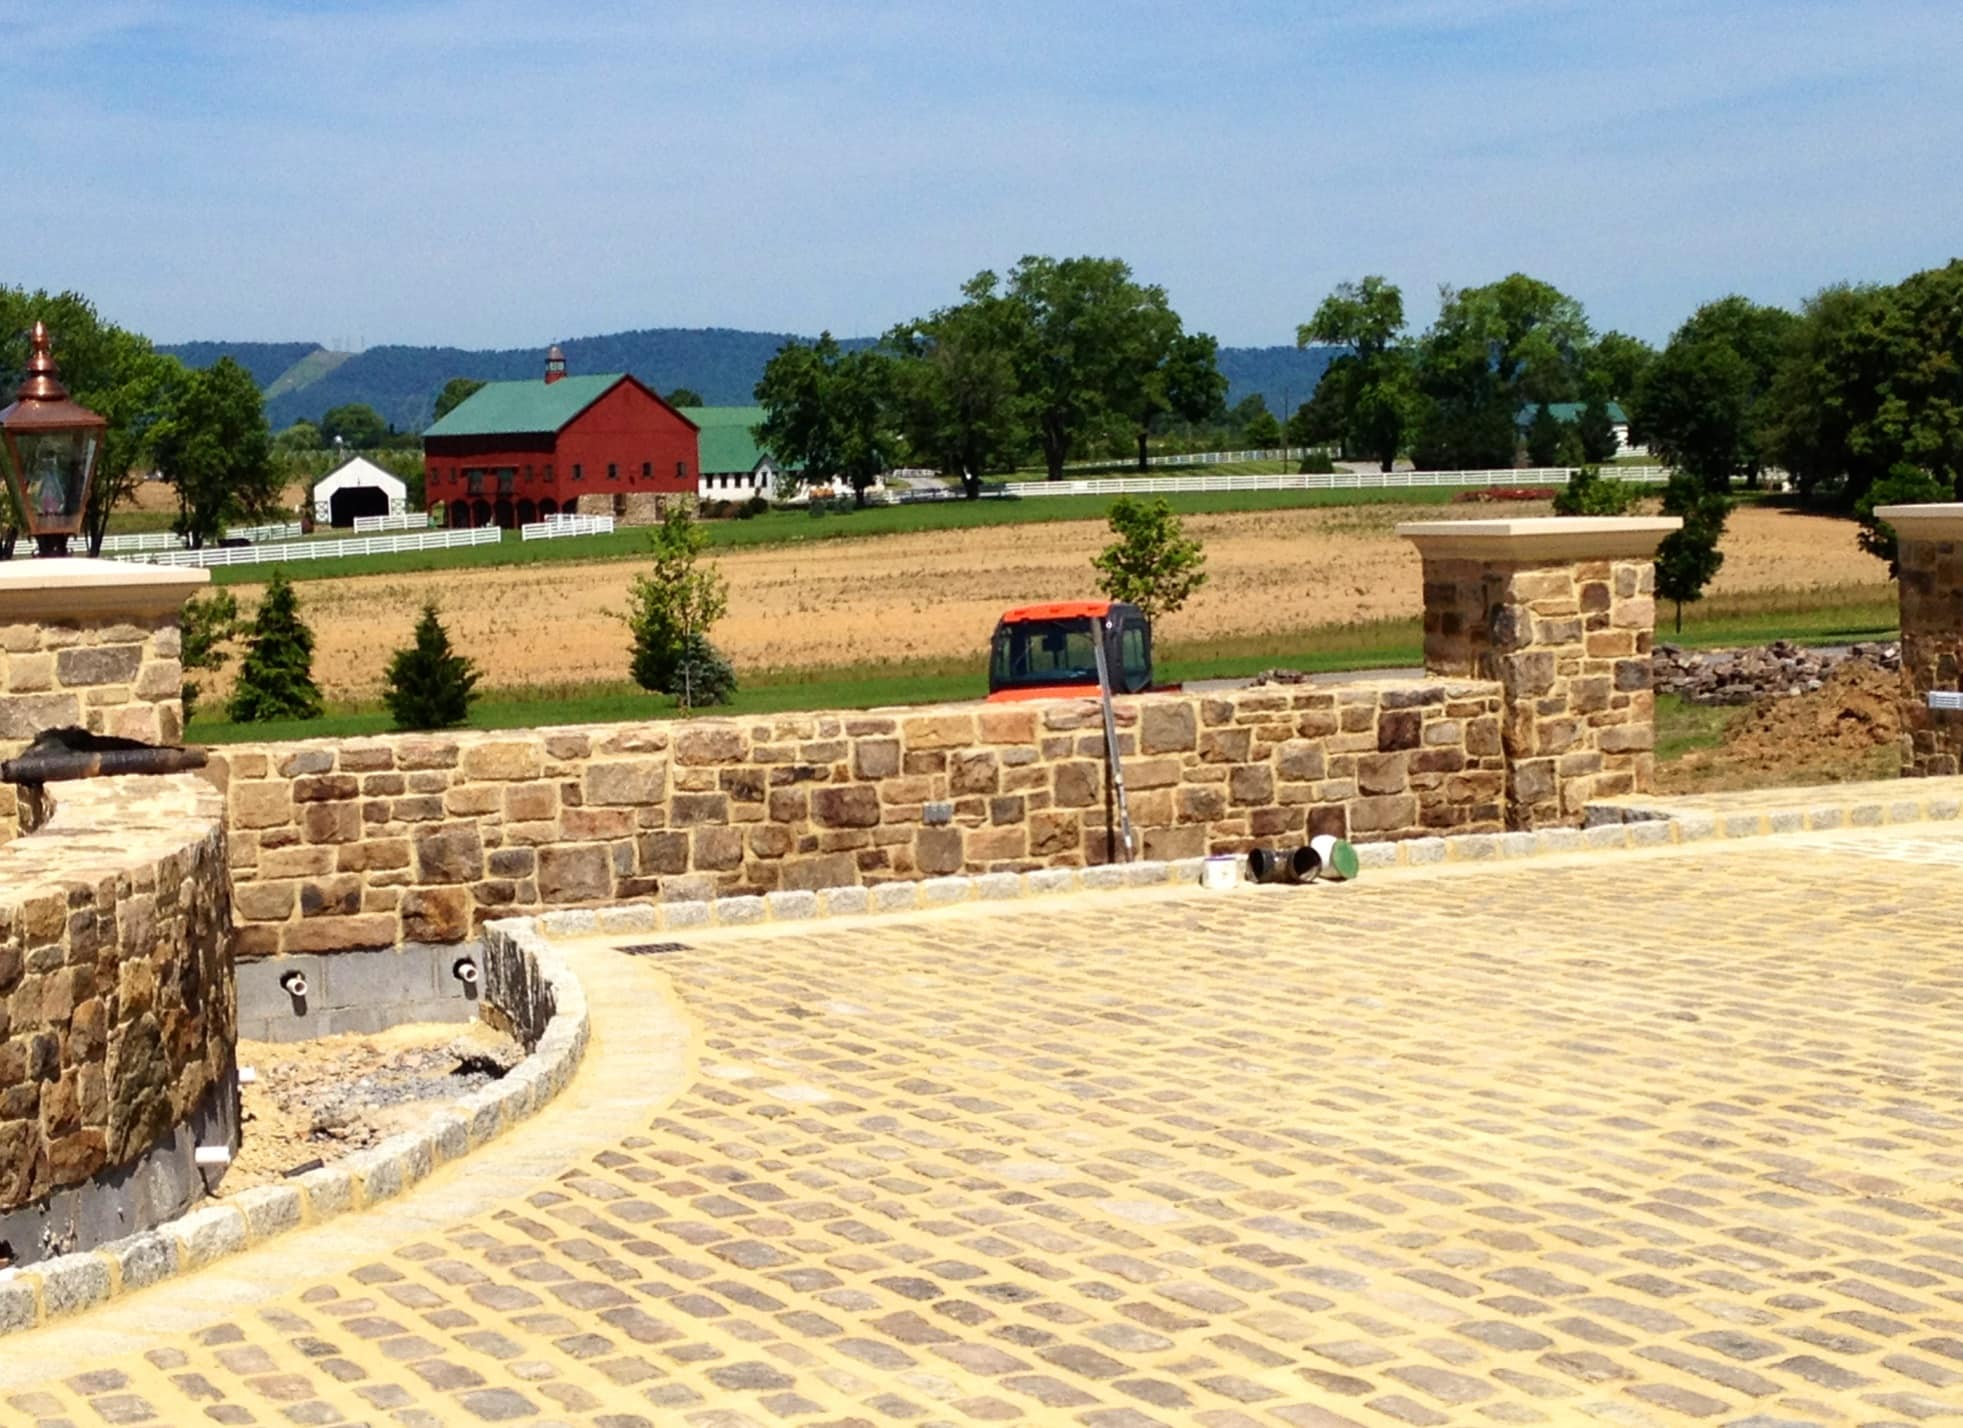 Closer view of the brick wall enclosing the small plaza with the barn house visible on the back.